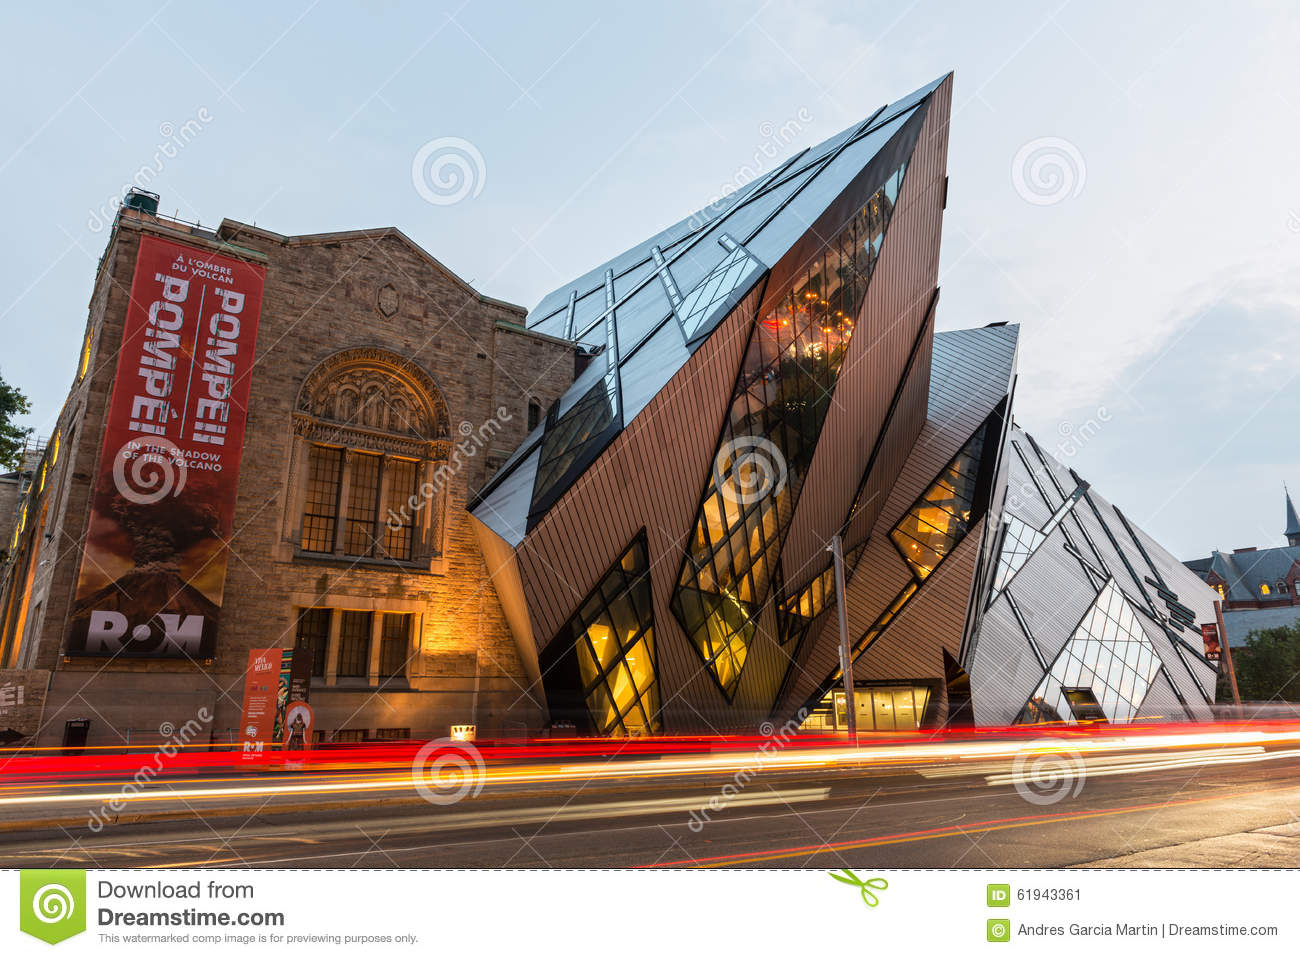 The Crystal in the Royal Ontario Museum, Toronto